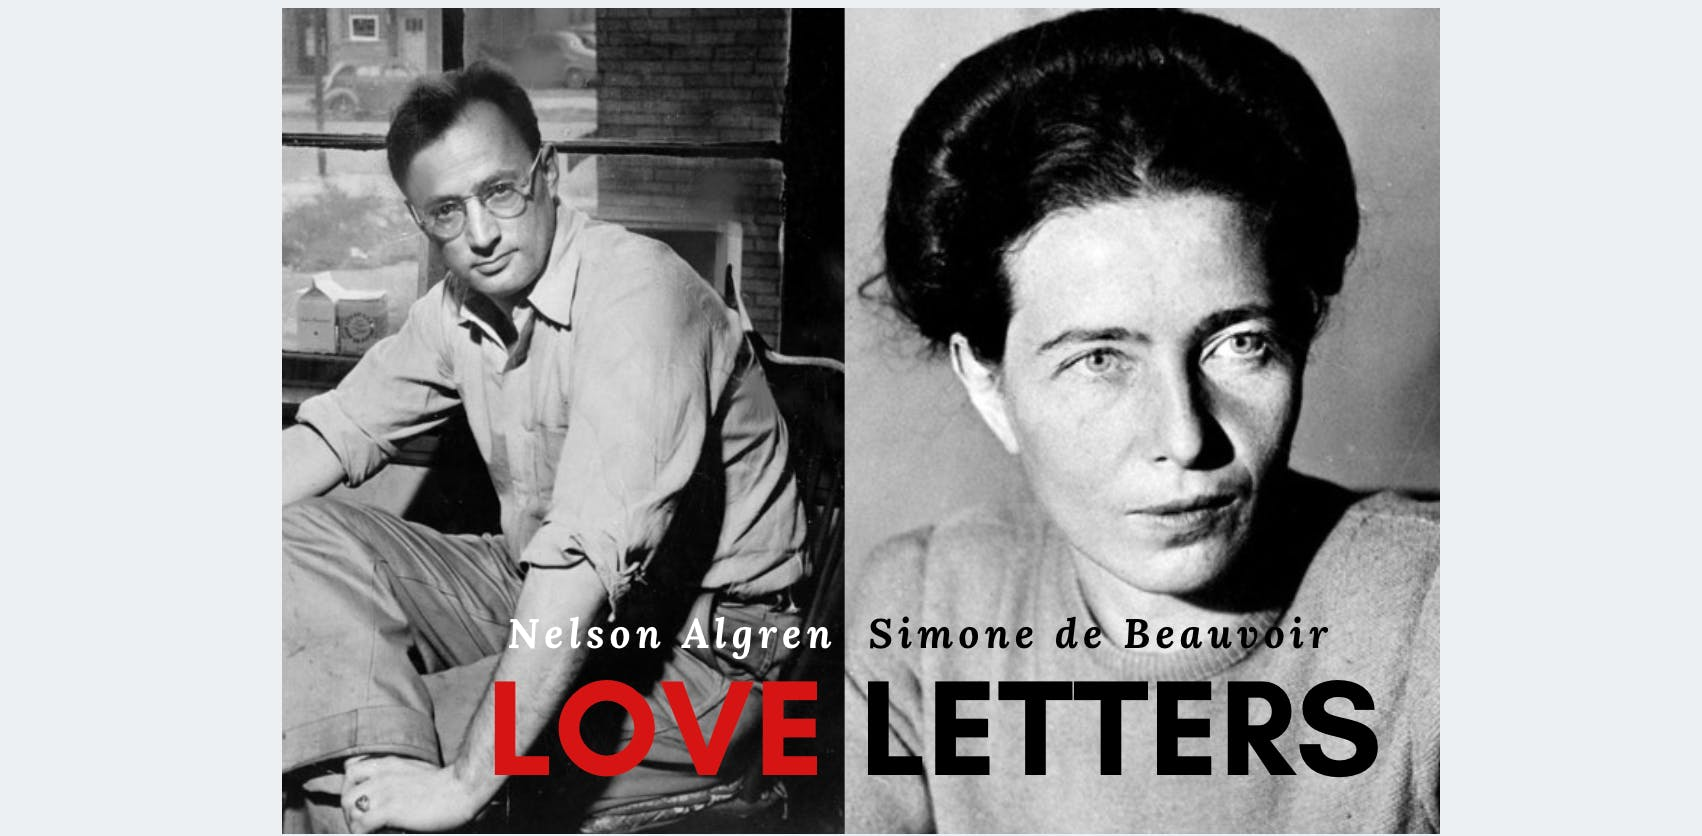 Love Letters: Simone de Beauvoir & Nelson Algren - 10 FEB 2019